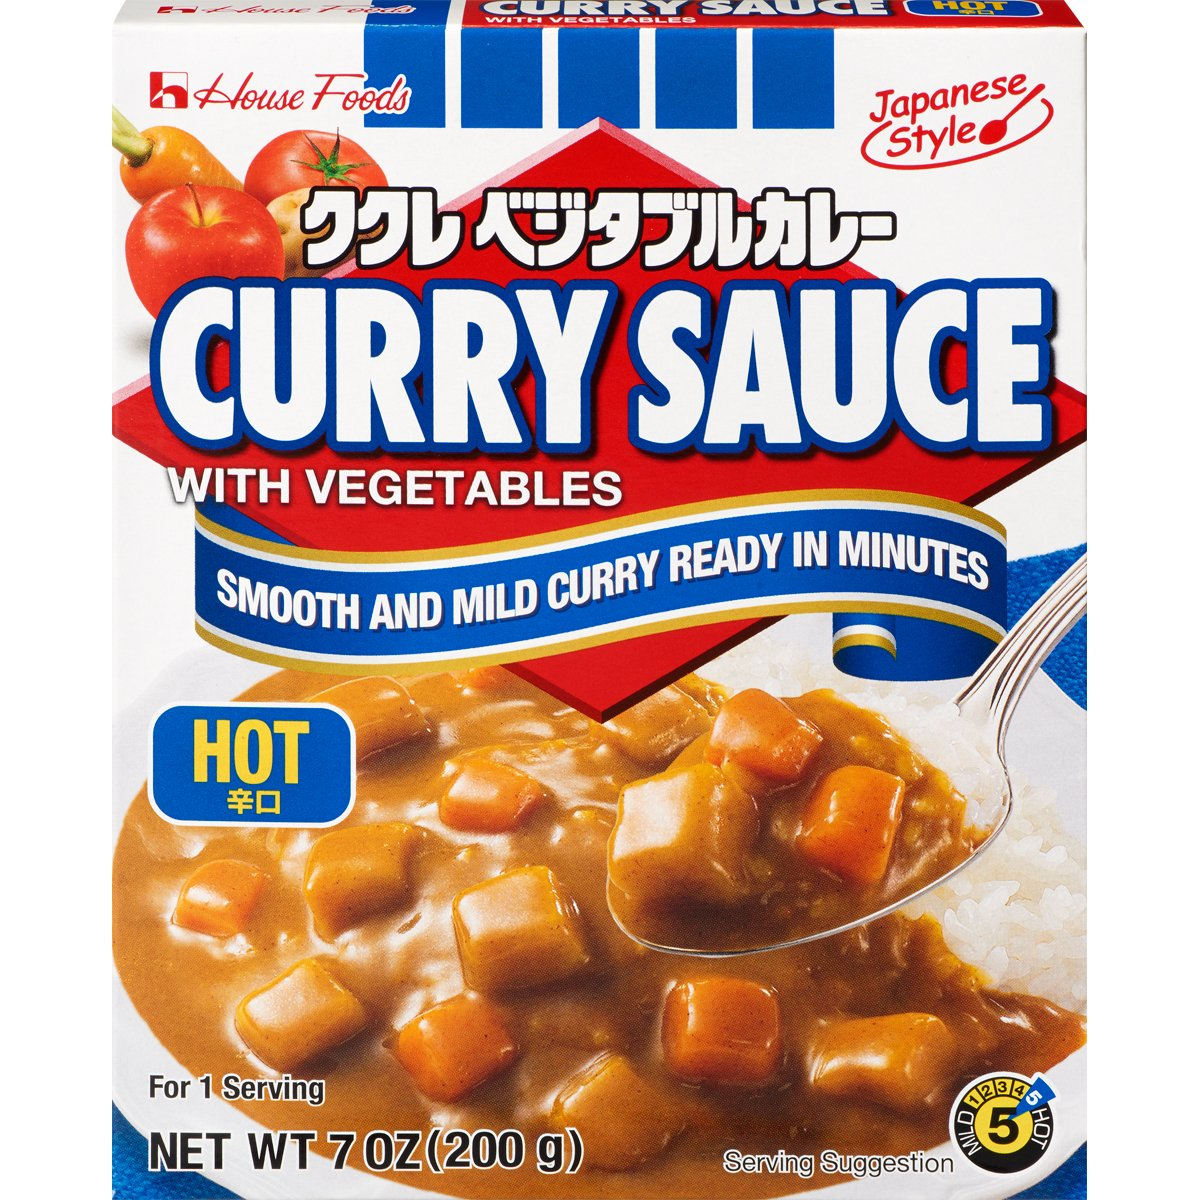 House Foods Curry Sauce with Vegetables, Hot, 7 Ounce Boxes (Pack of 10)